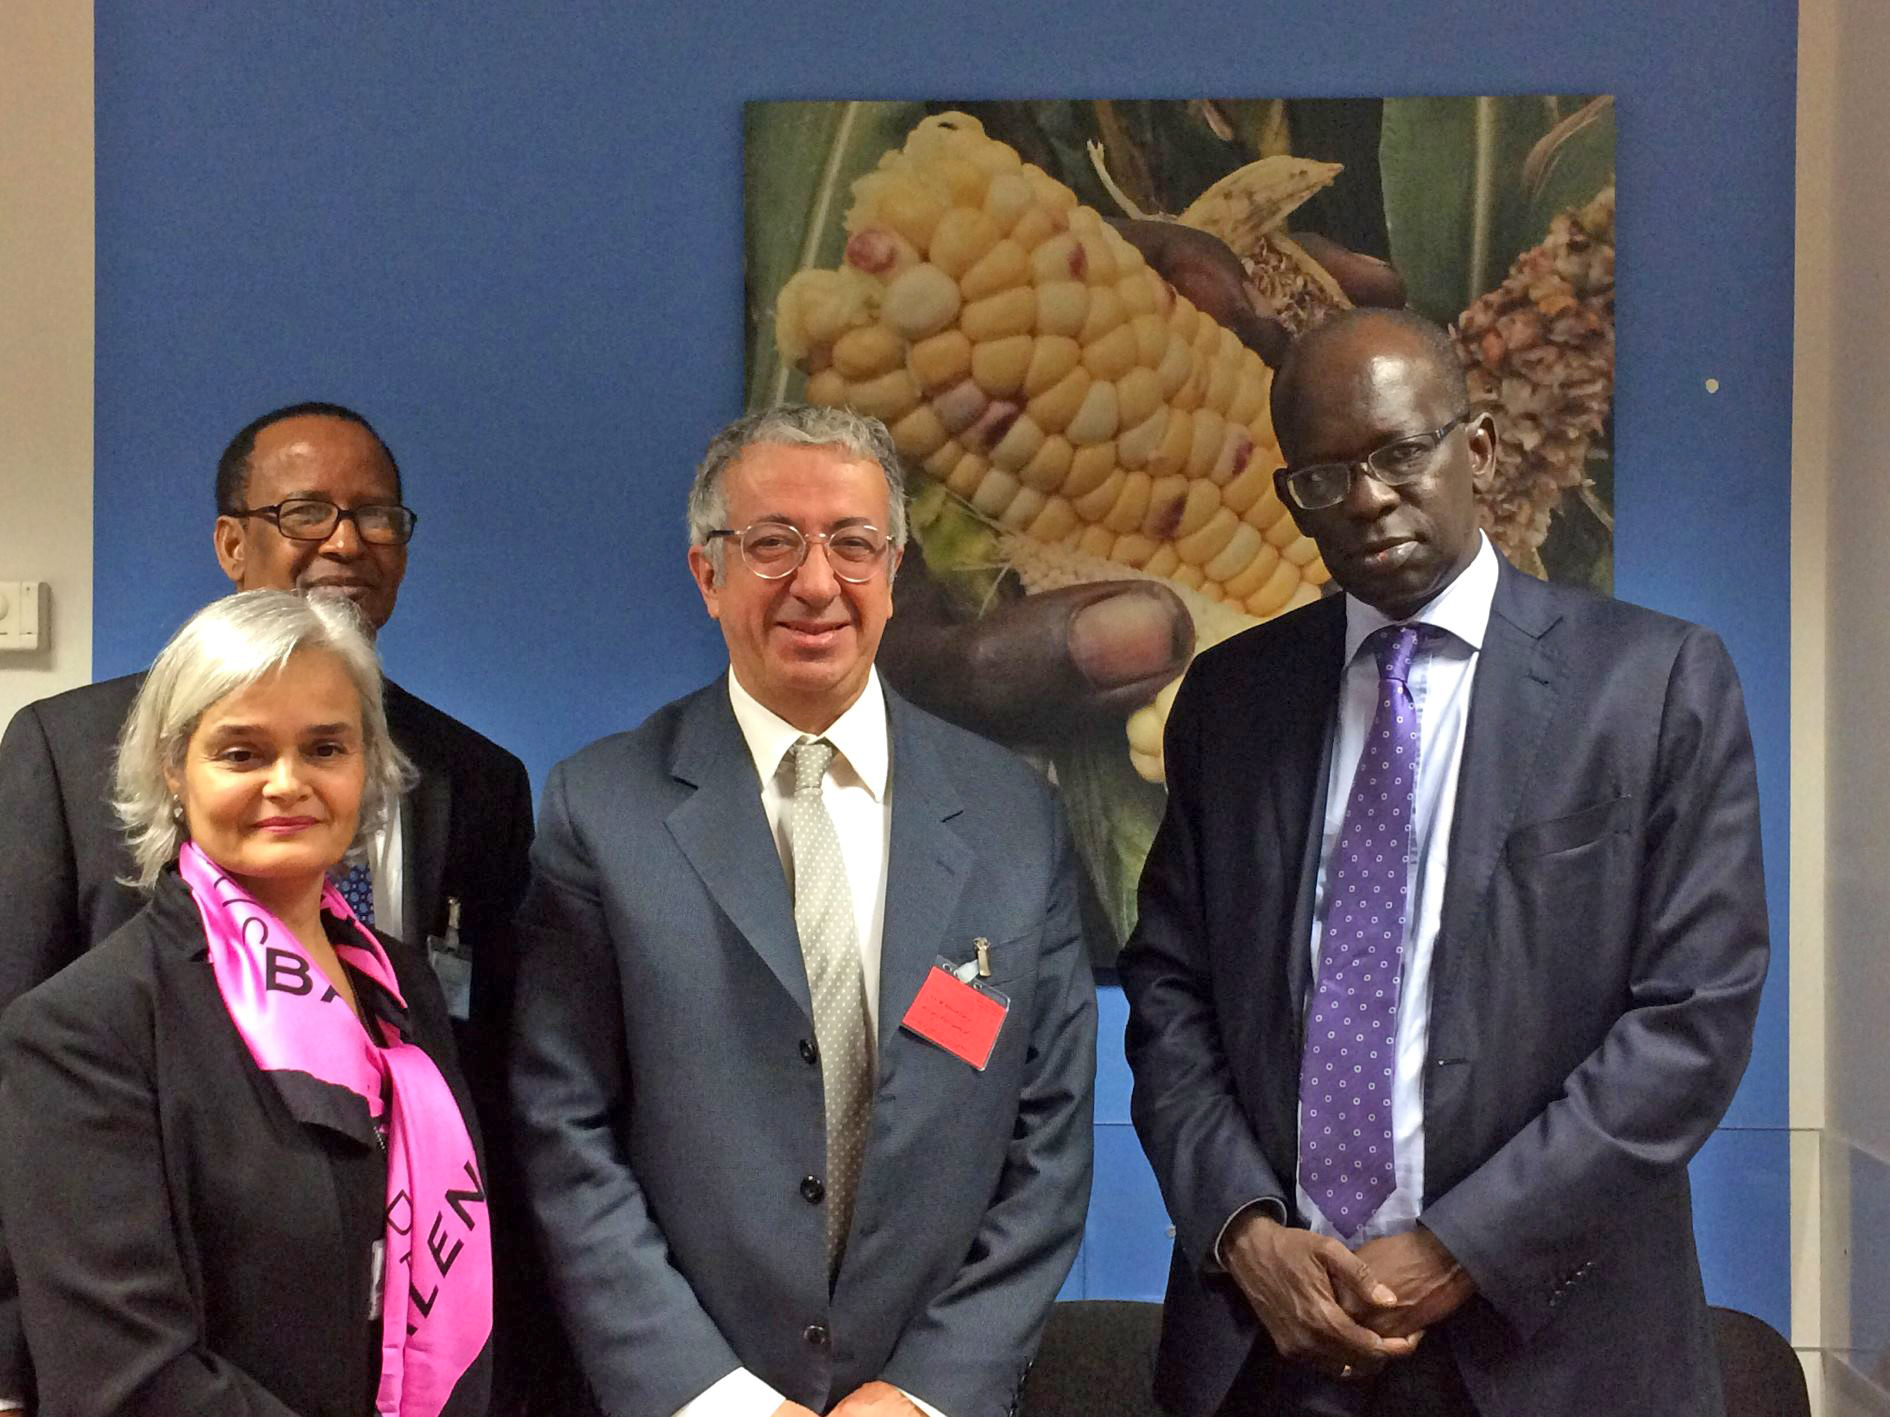 Ms Martine Garcia, Deputy Alternate Representative to FAO and WFP, Mr Abdoulaye Balde, WFP Country Director for Cameroon and Sao Tome and Principe, HE Mr Robert Fillon, Ambassador of the Principality of Monaco in Italy, Permanent Representative to FAO and WFP, Mr Abdou Dieng, WFP Regional Director for Central and Western Africa. Photo: DC